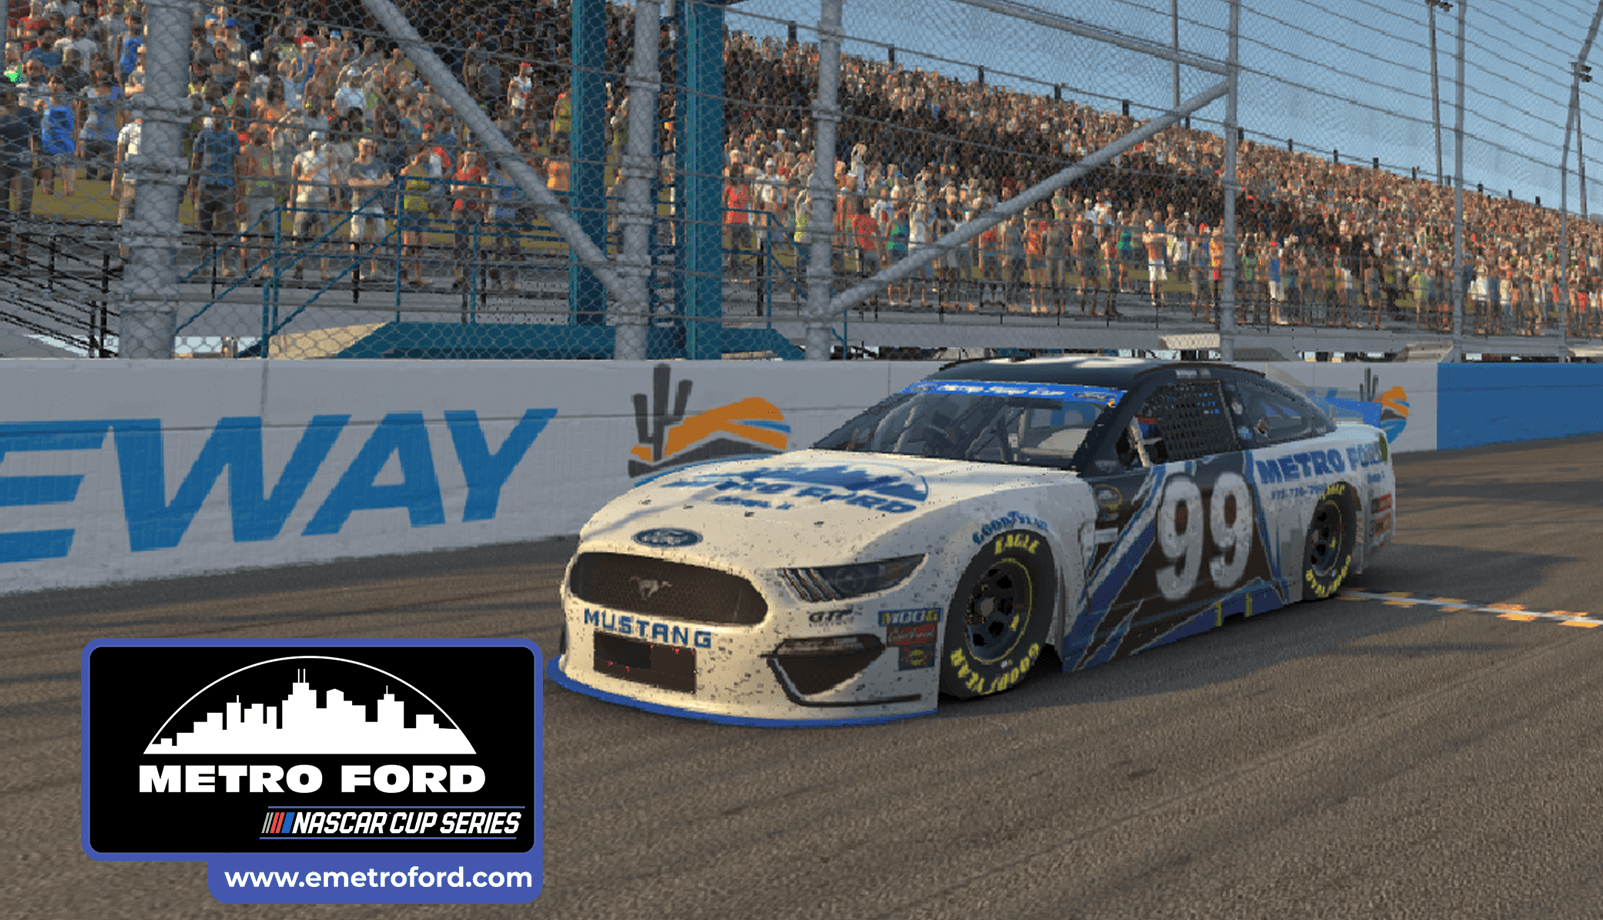 Nascar Metro Ford Cup Schedule